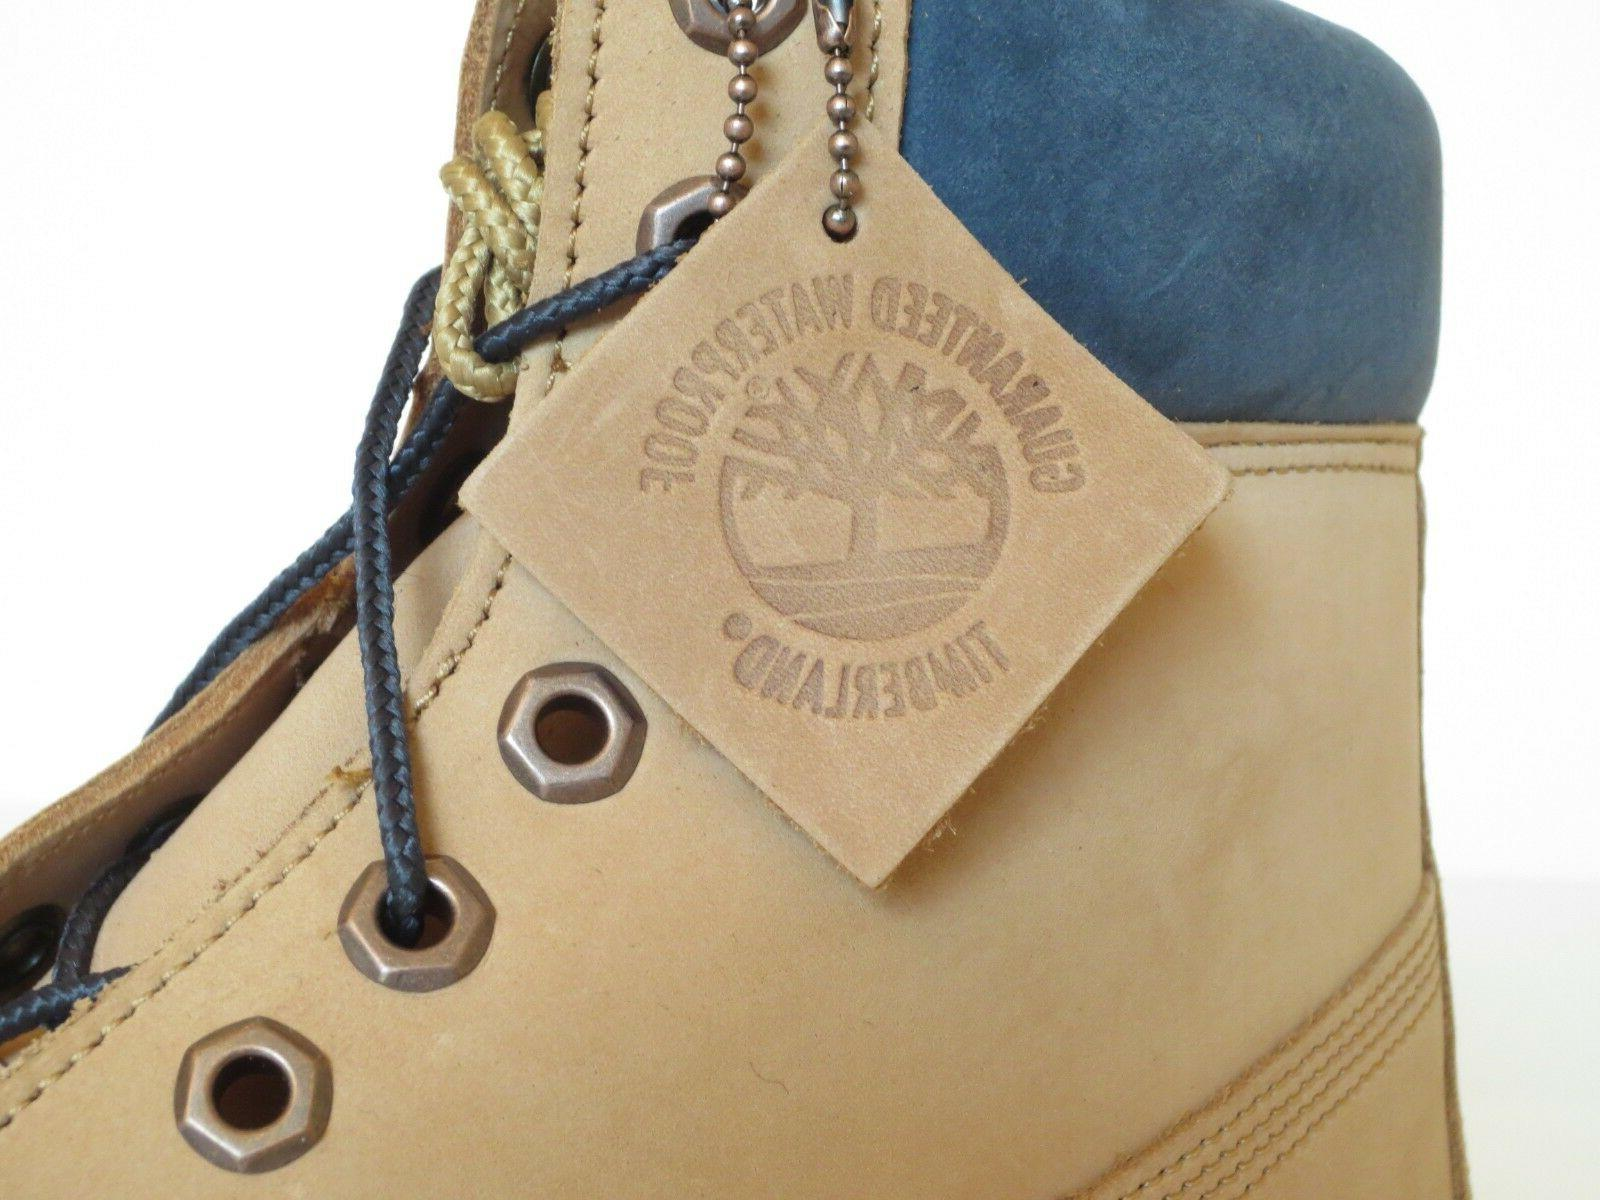 Timberland Premium Leather Work Boots Style Sand / Blue